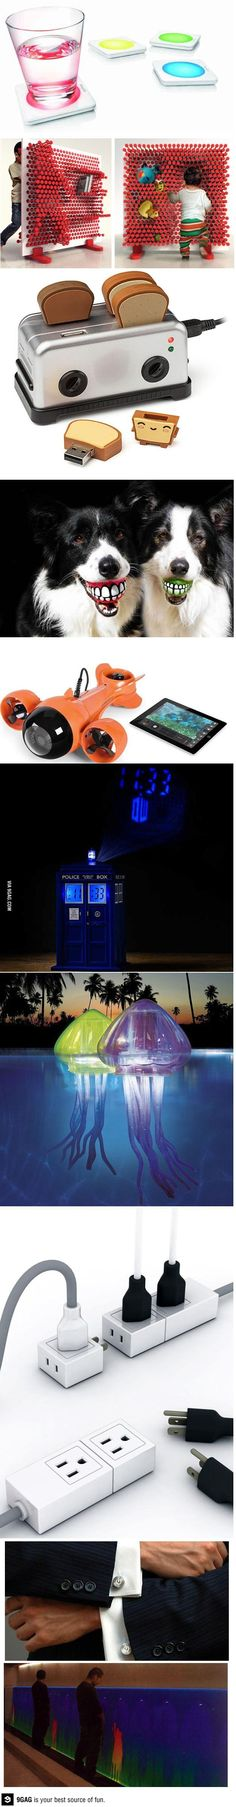 The world's coolest random gadgets. I want the tardis clock. Now.